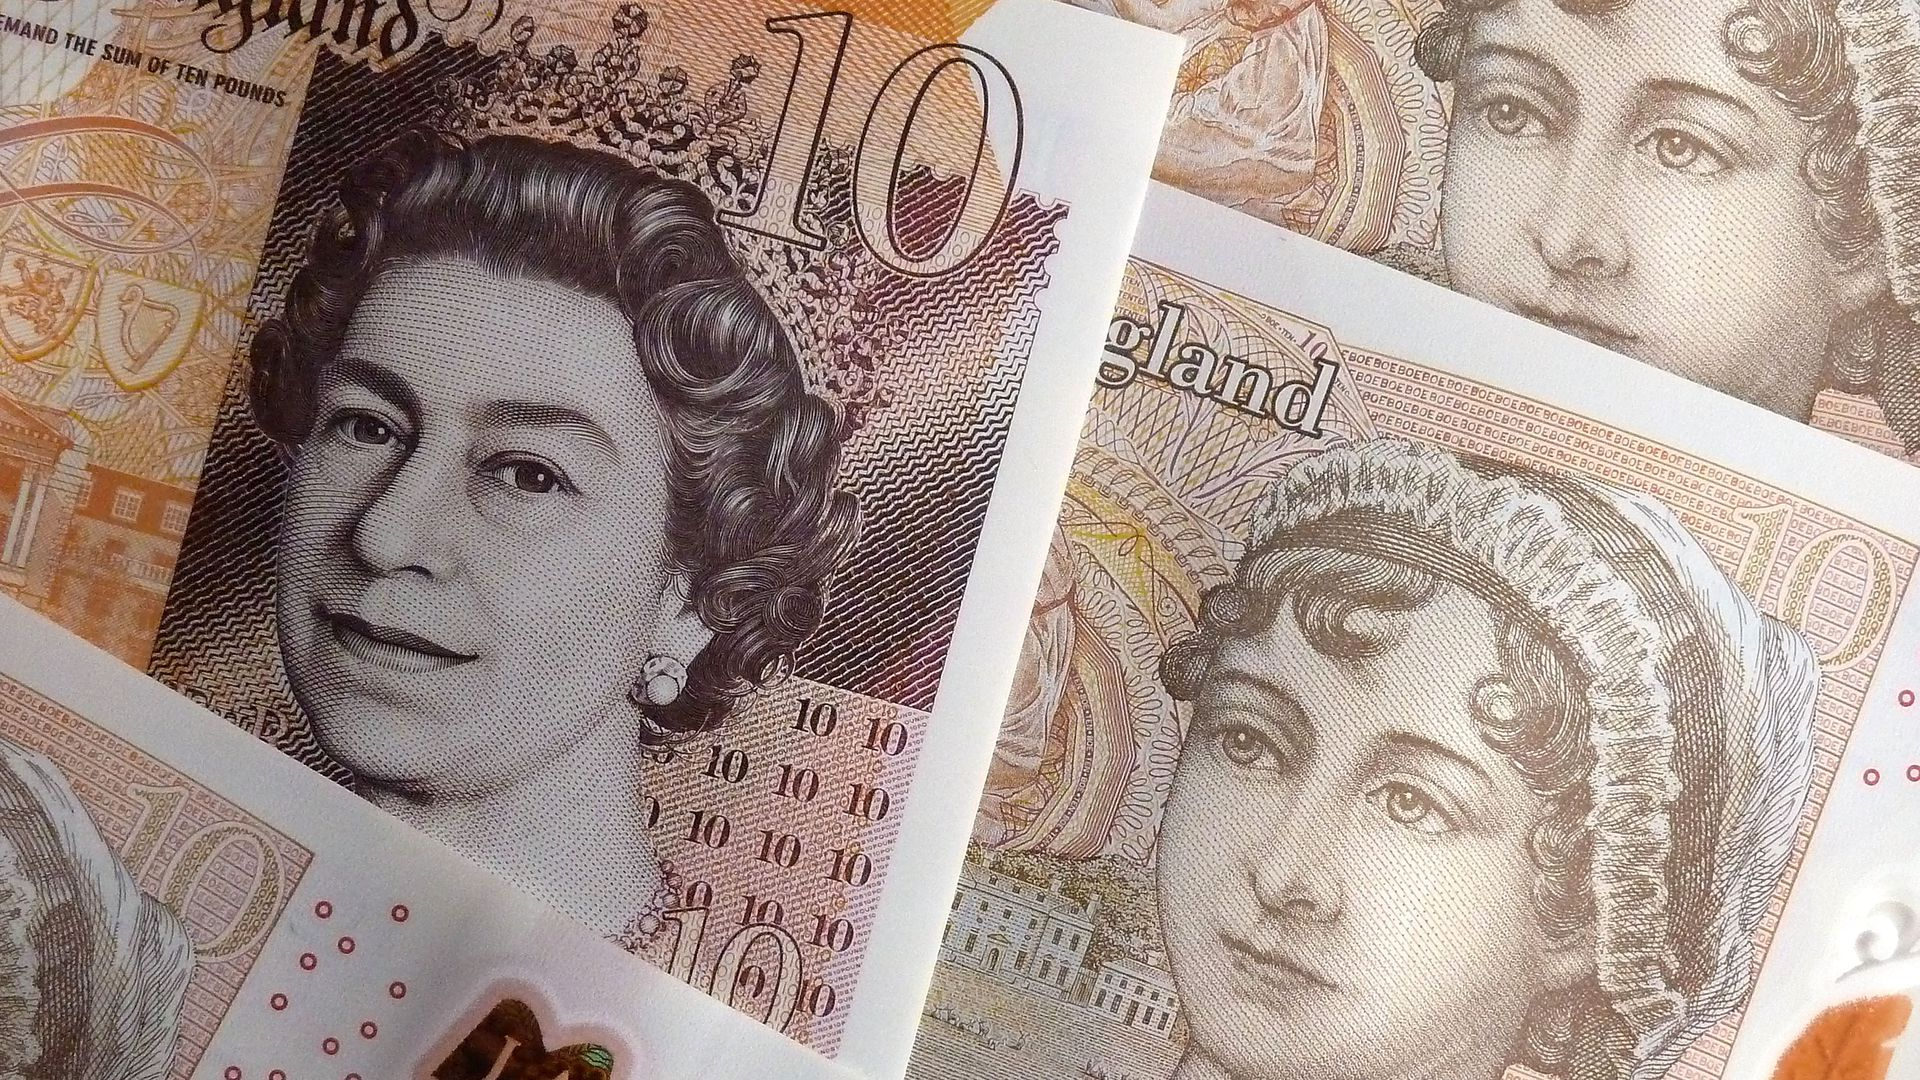 A photo illustration of the British ten pound note, featuring a portrait of Jane Austen